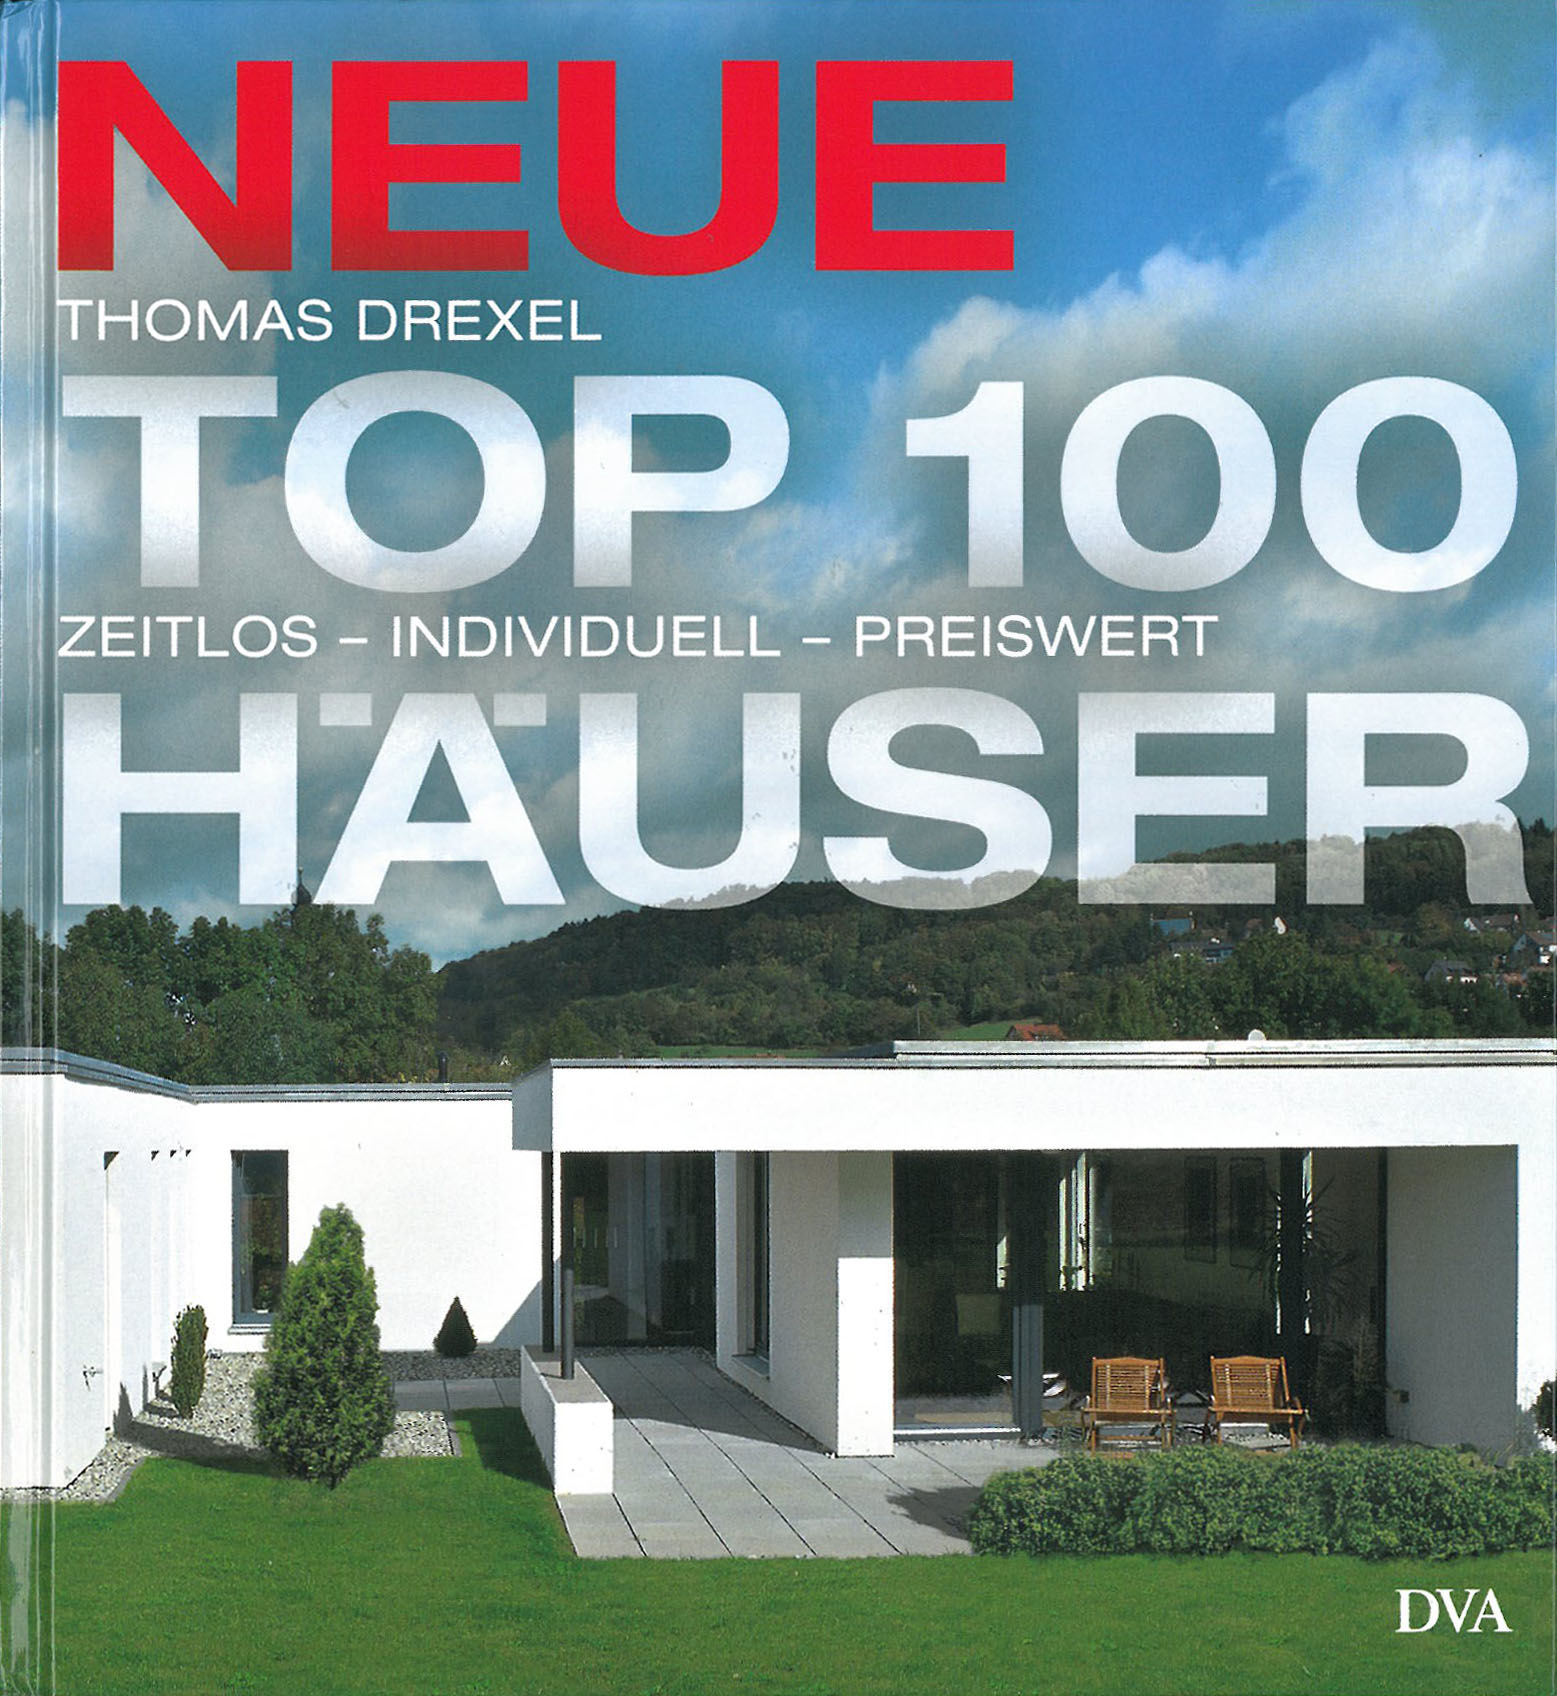 New Top 100 Houses | Neue Top 100 Hauser – featuring CHENG Design